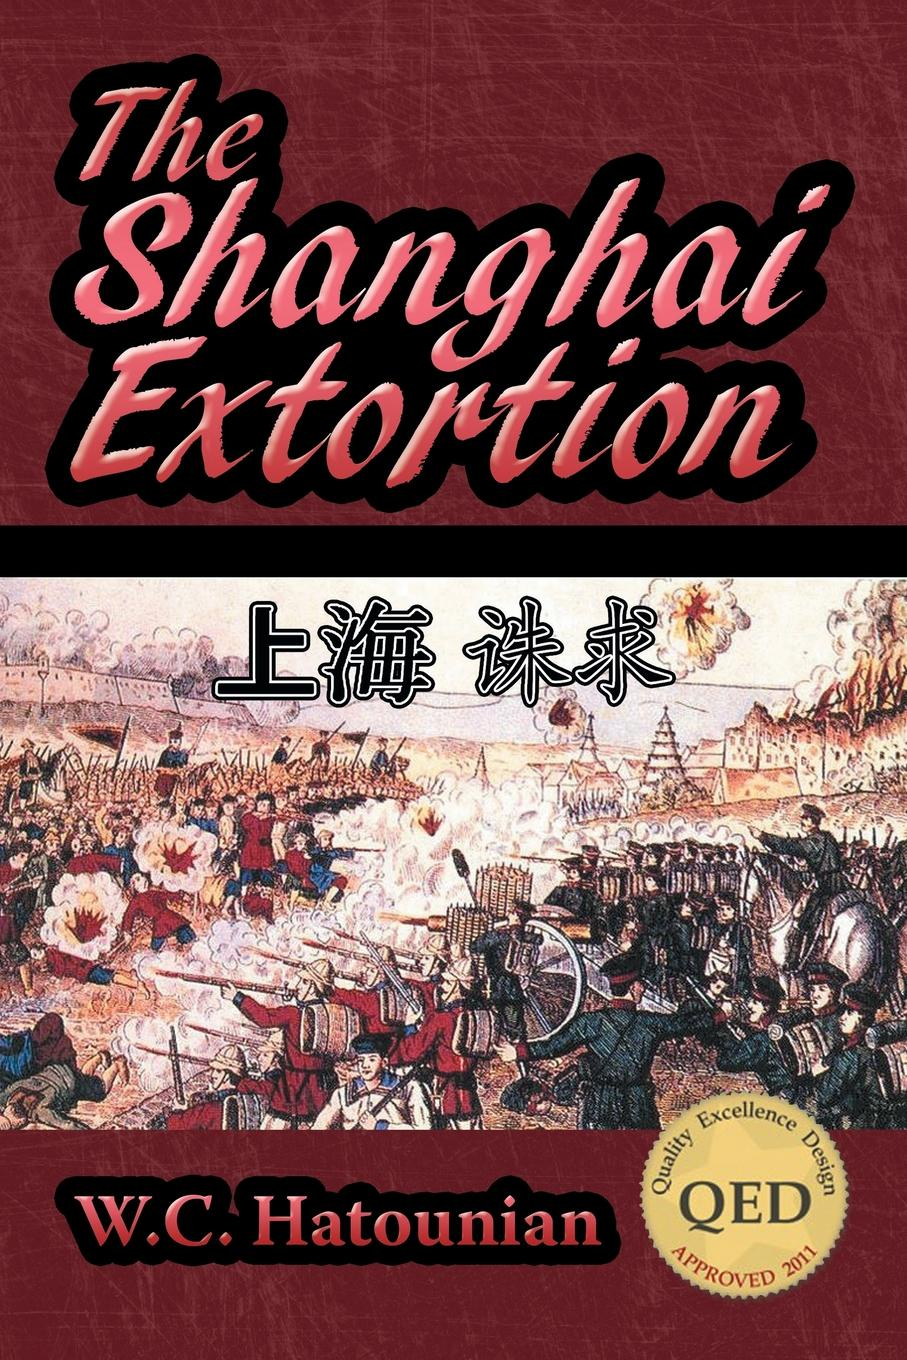 W.C. Hatounian The Shanghai Extortion peterson joseph the psychology of handling men in the army